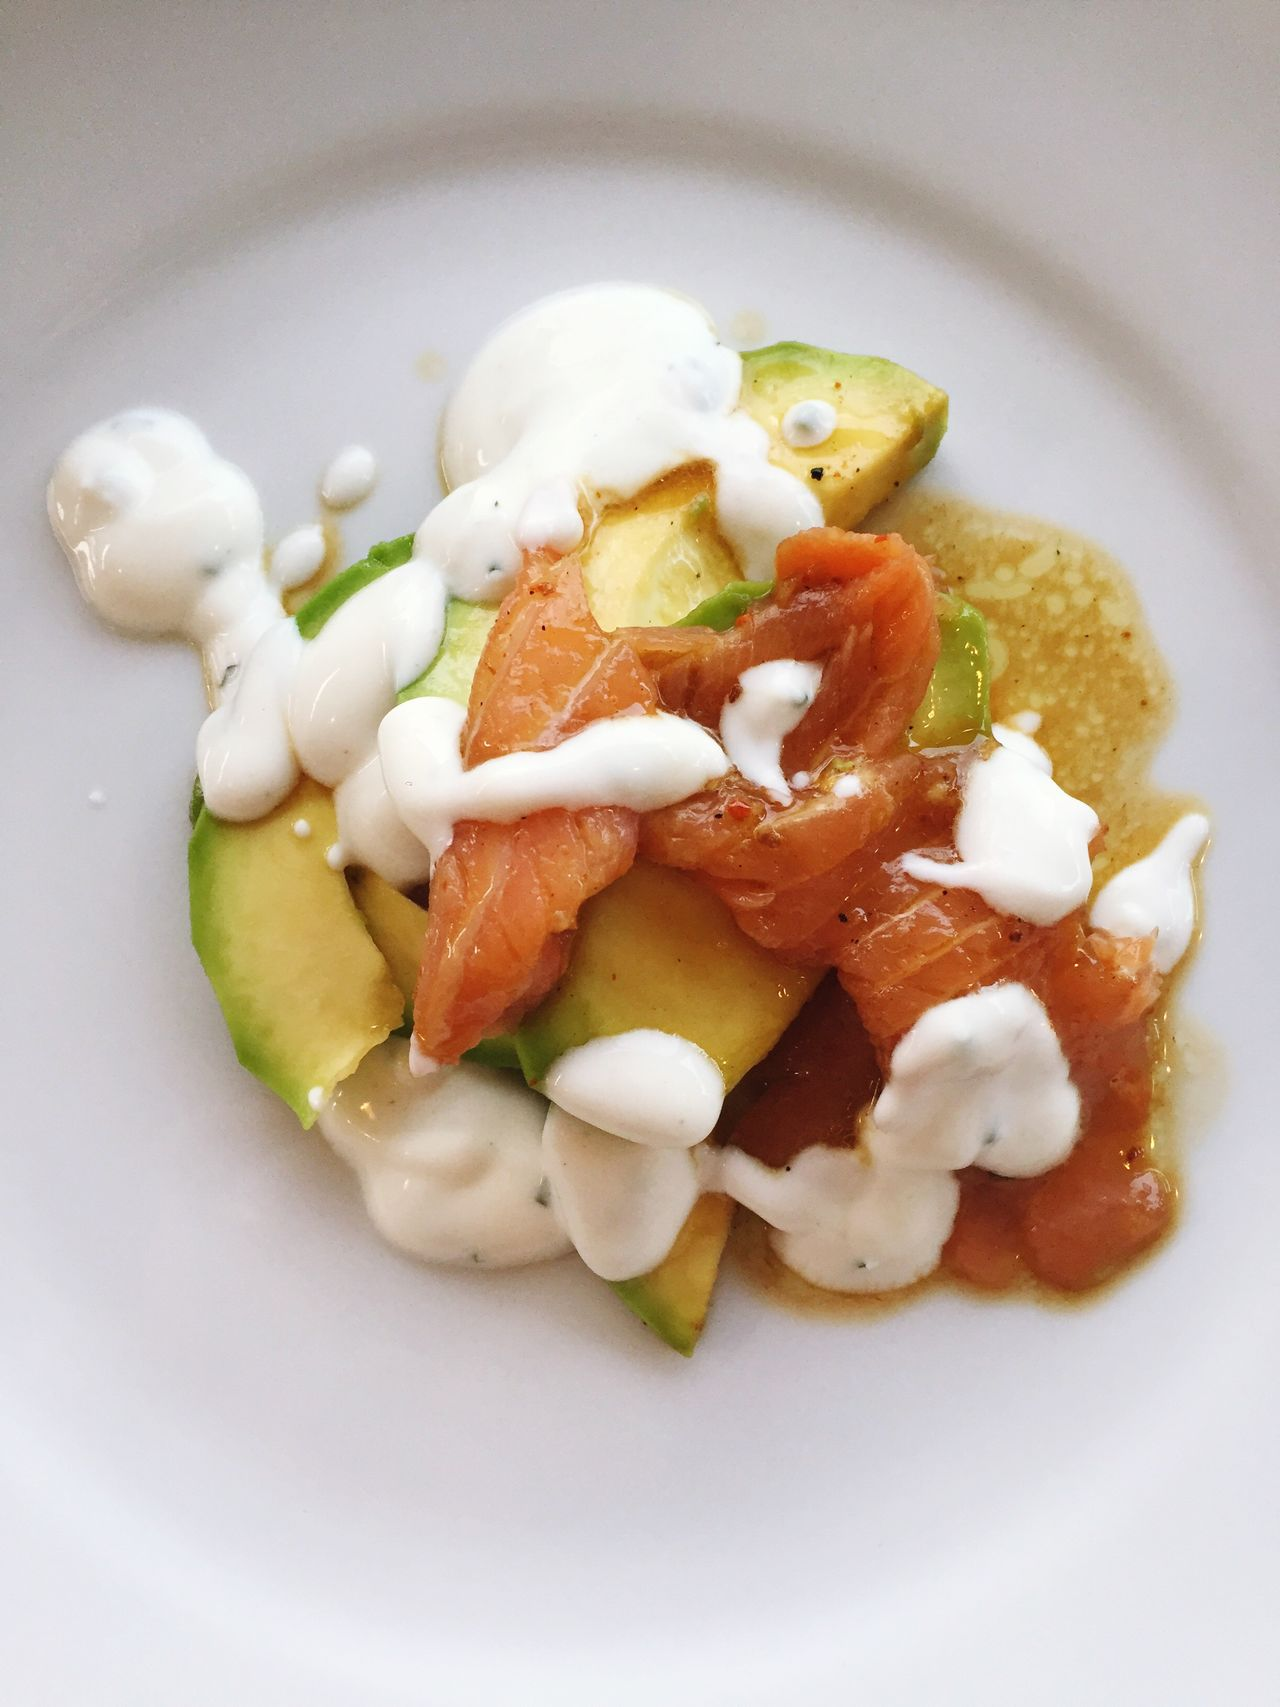 Smoked Salmon  & Avocado Salad Fresh Food Close Up Freshness Focus On Foreground Genuine Healthy Food Healthy Eating Appetizer Food Summer Food Ready-to-eat White Plate